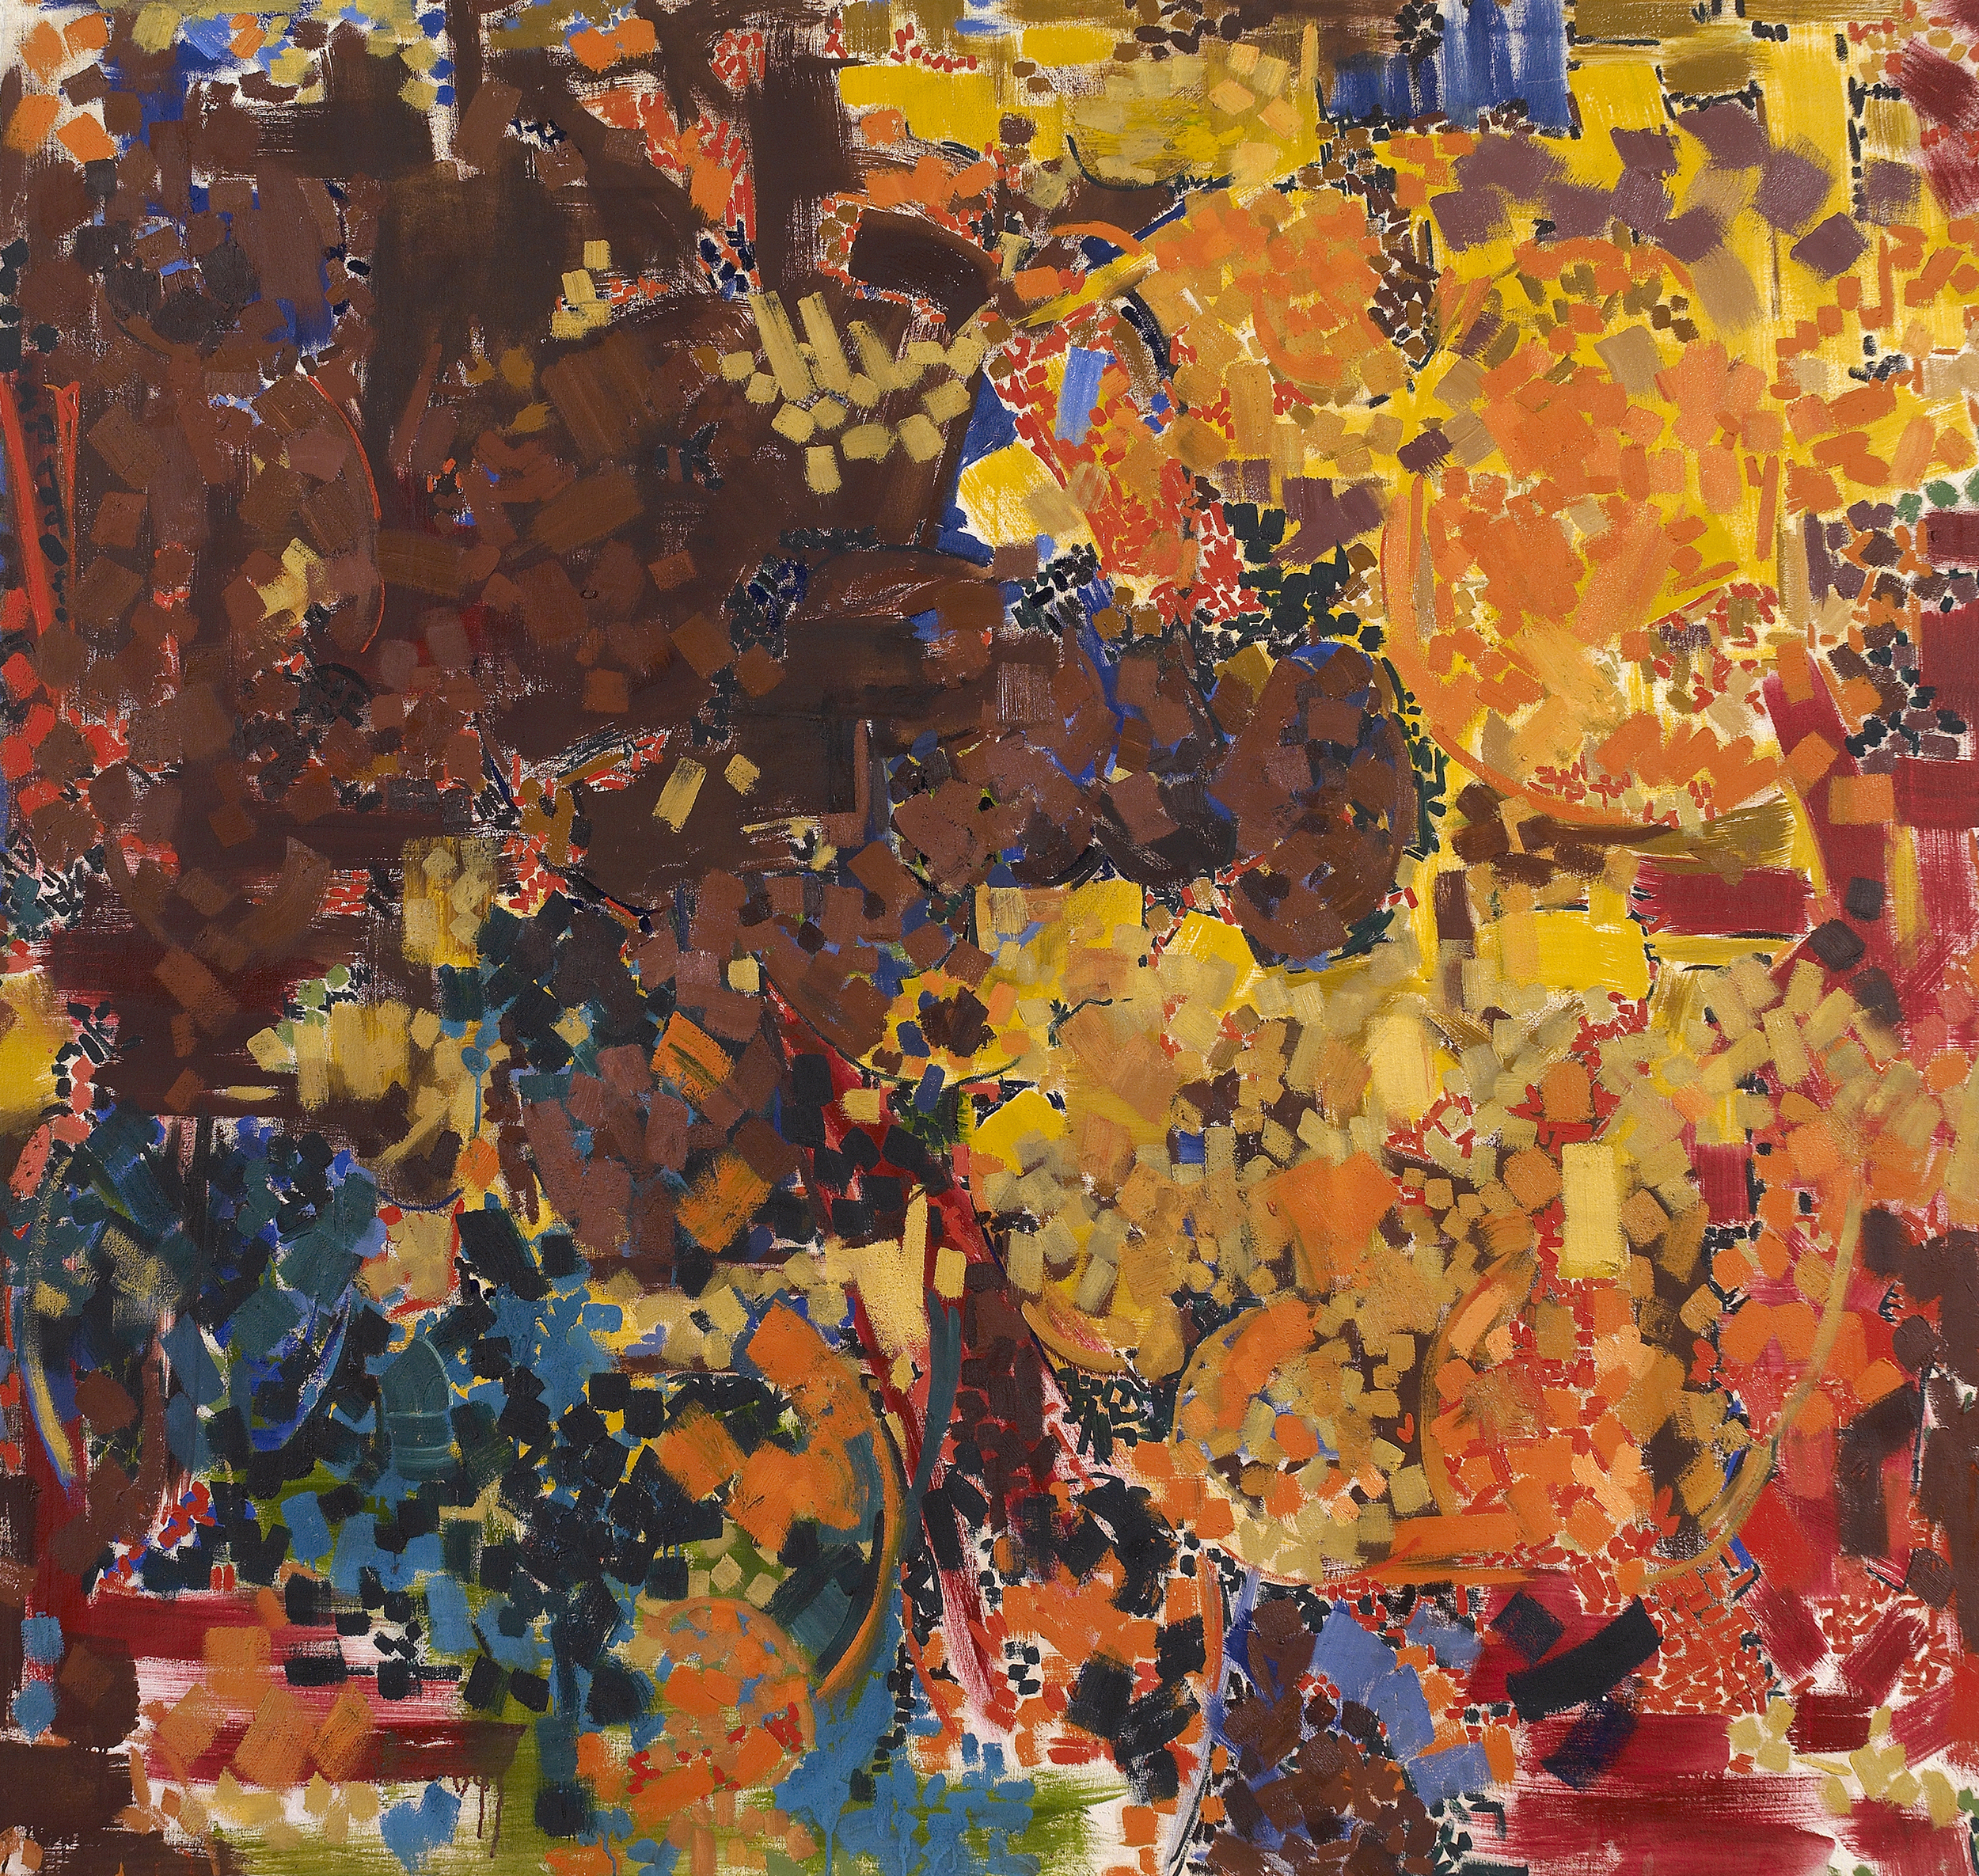 SOLD  Machipongo, 1959 - 60  , oil on canvas, 58 x 61 inches